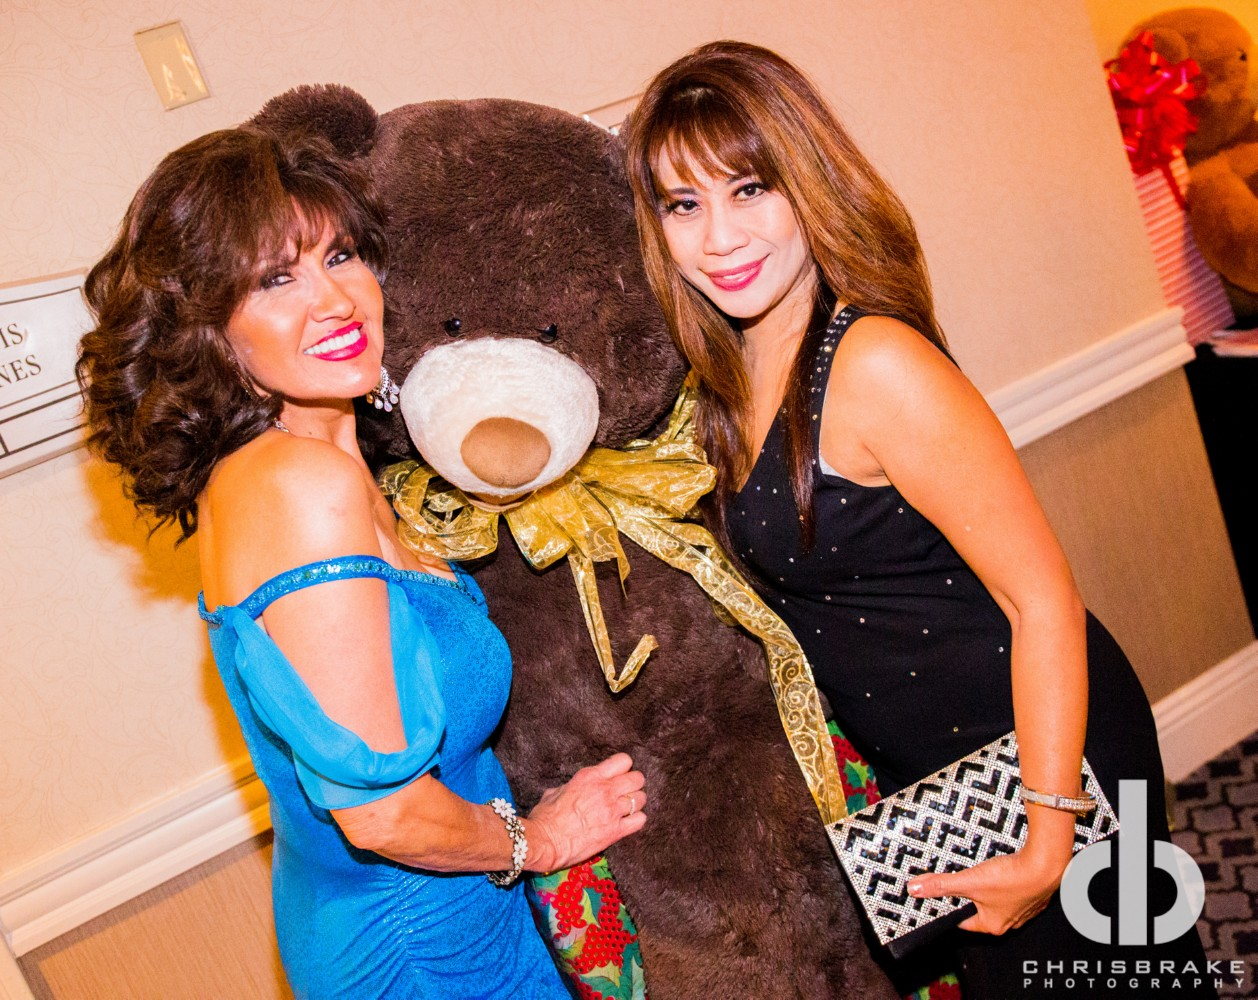 Chris_Brake_Photography_2016_Teddy_Ball - 57.jpg